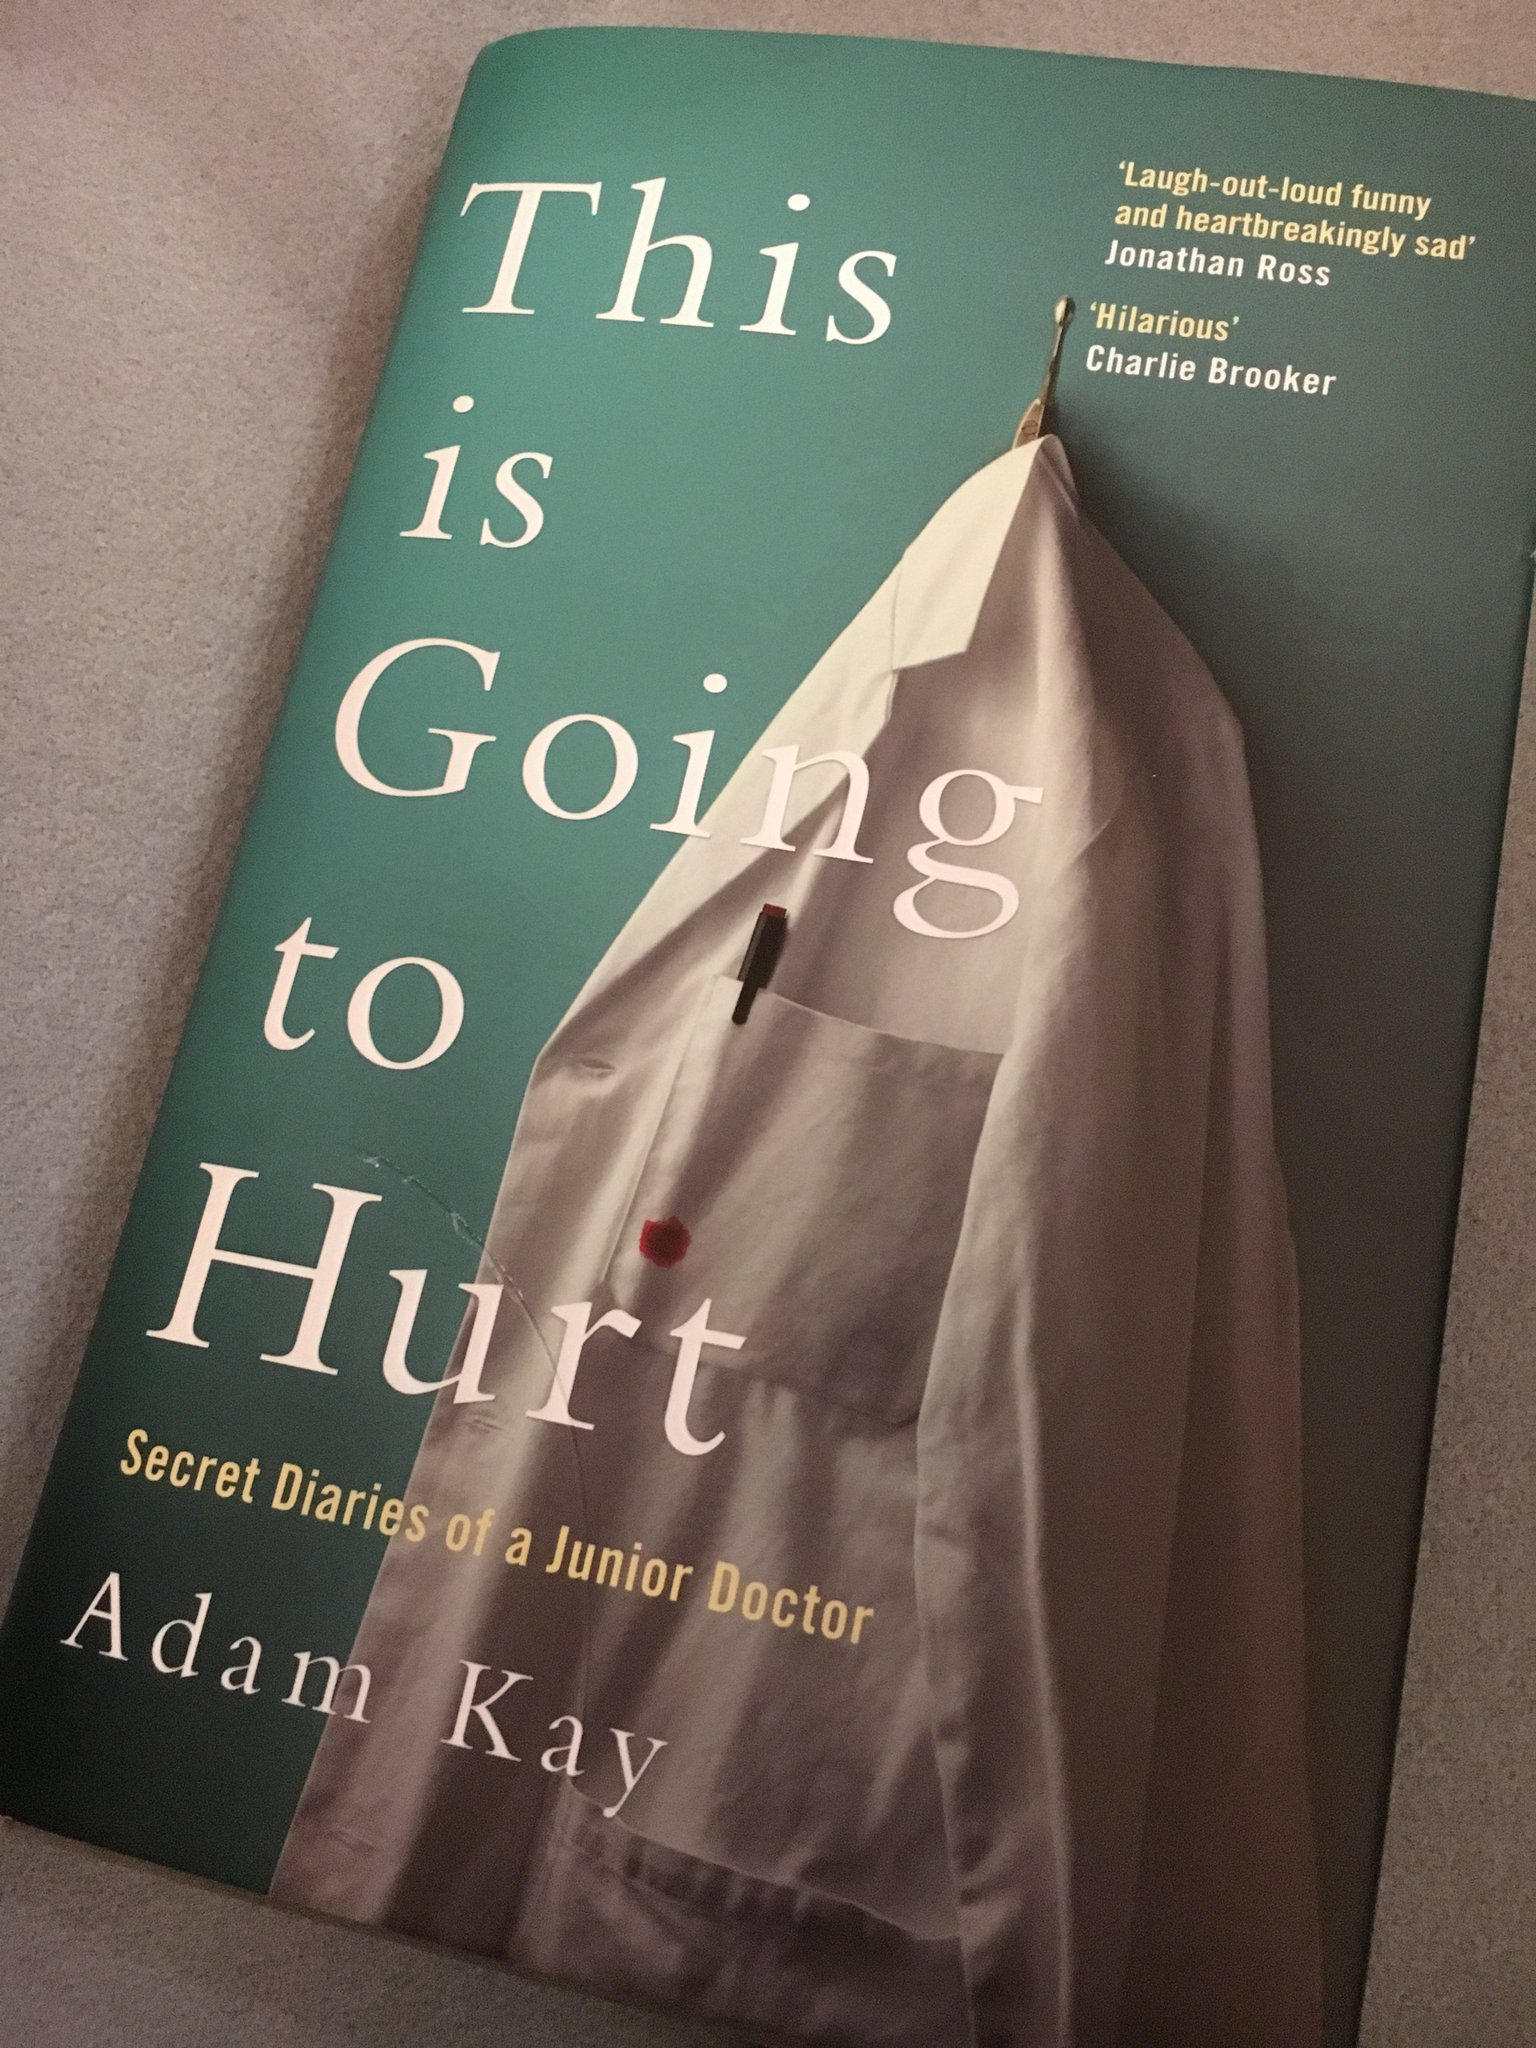 Excited to get this book by @amateuradam and — OMG, the first page I turn to: https://t.co/2pPEVLiEfi